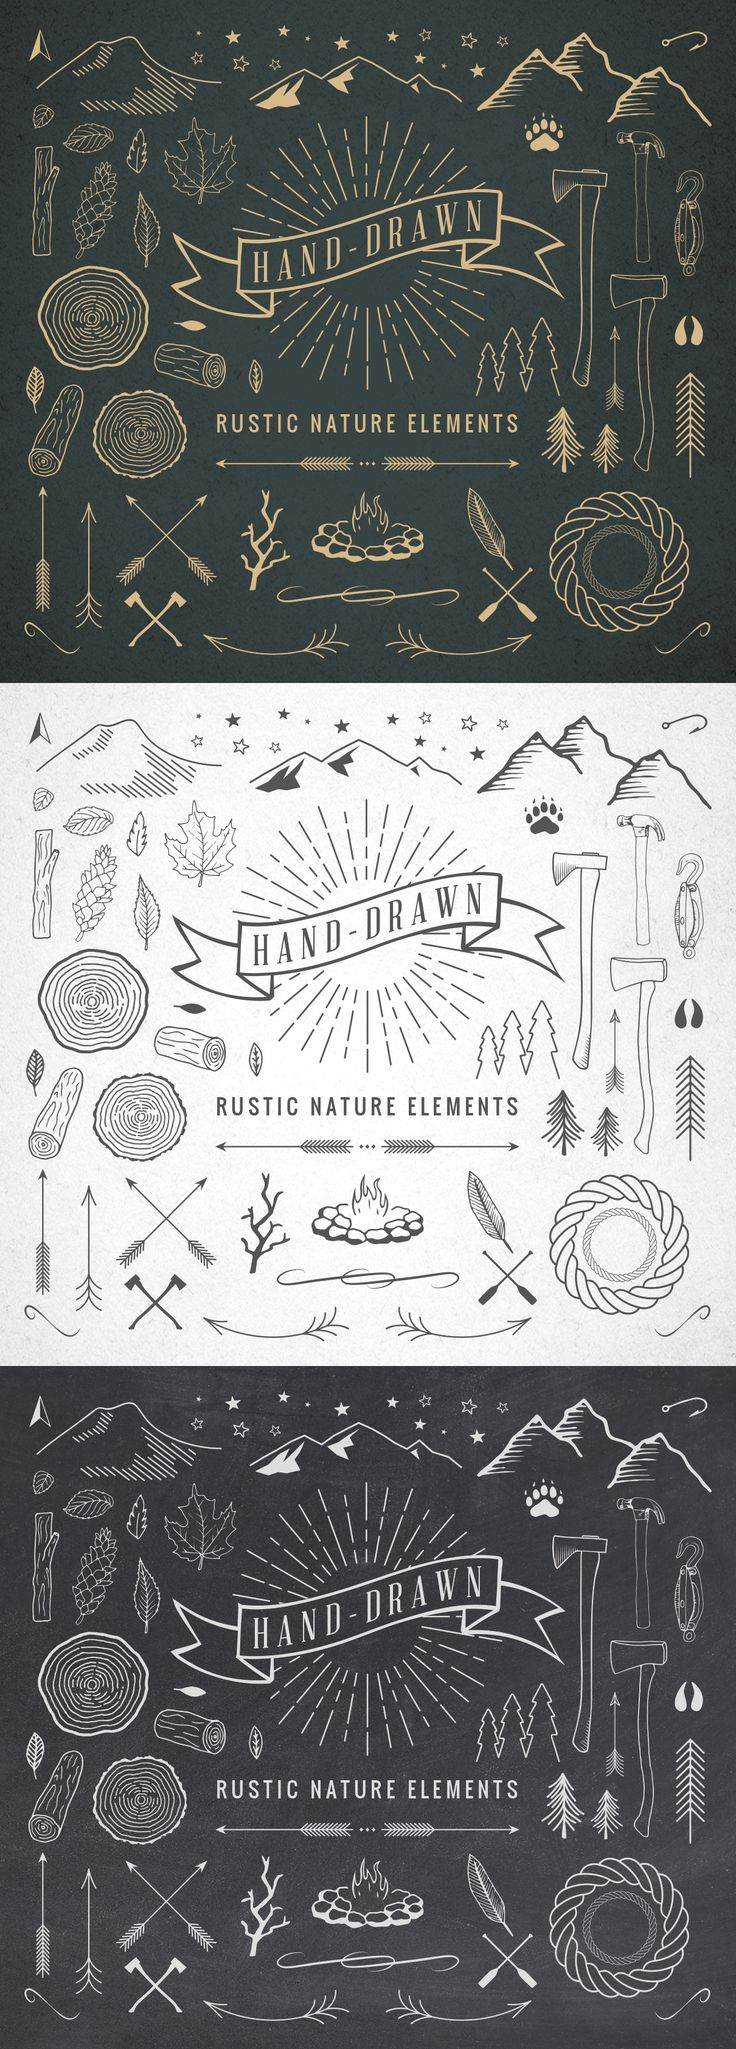 """Hand-Drawn Rustic Nature Elements"" by Adrian Pelletier."